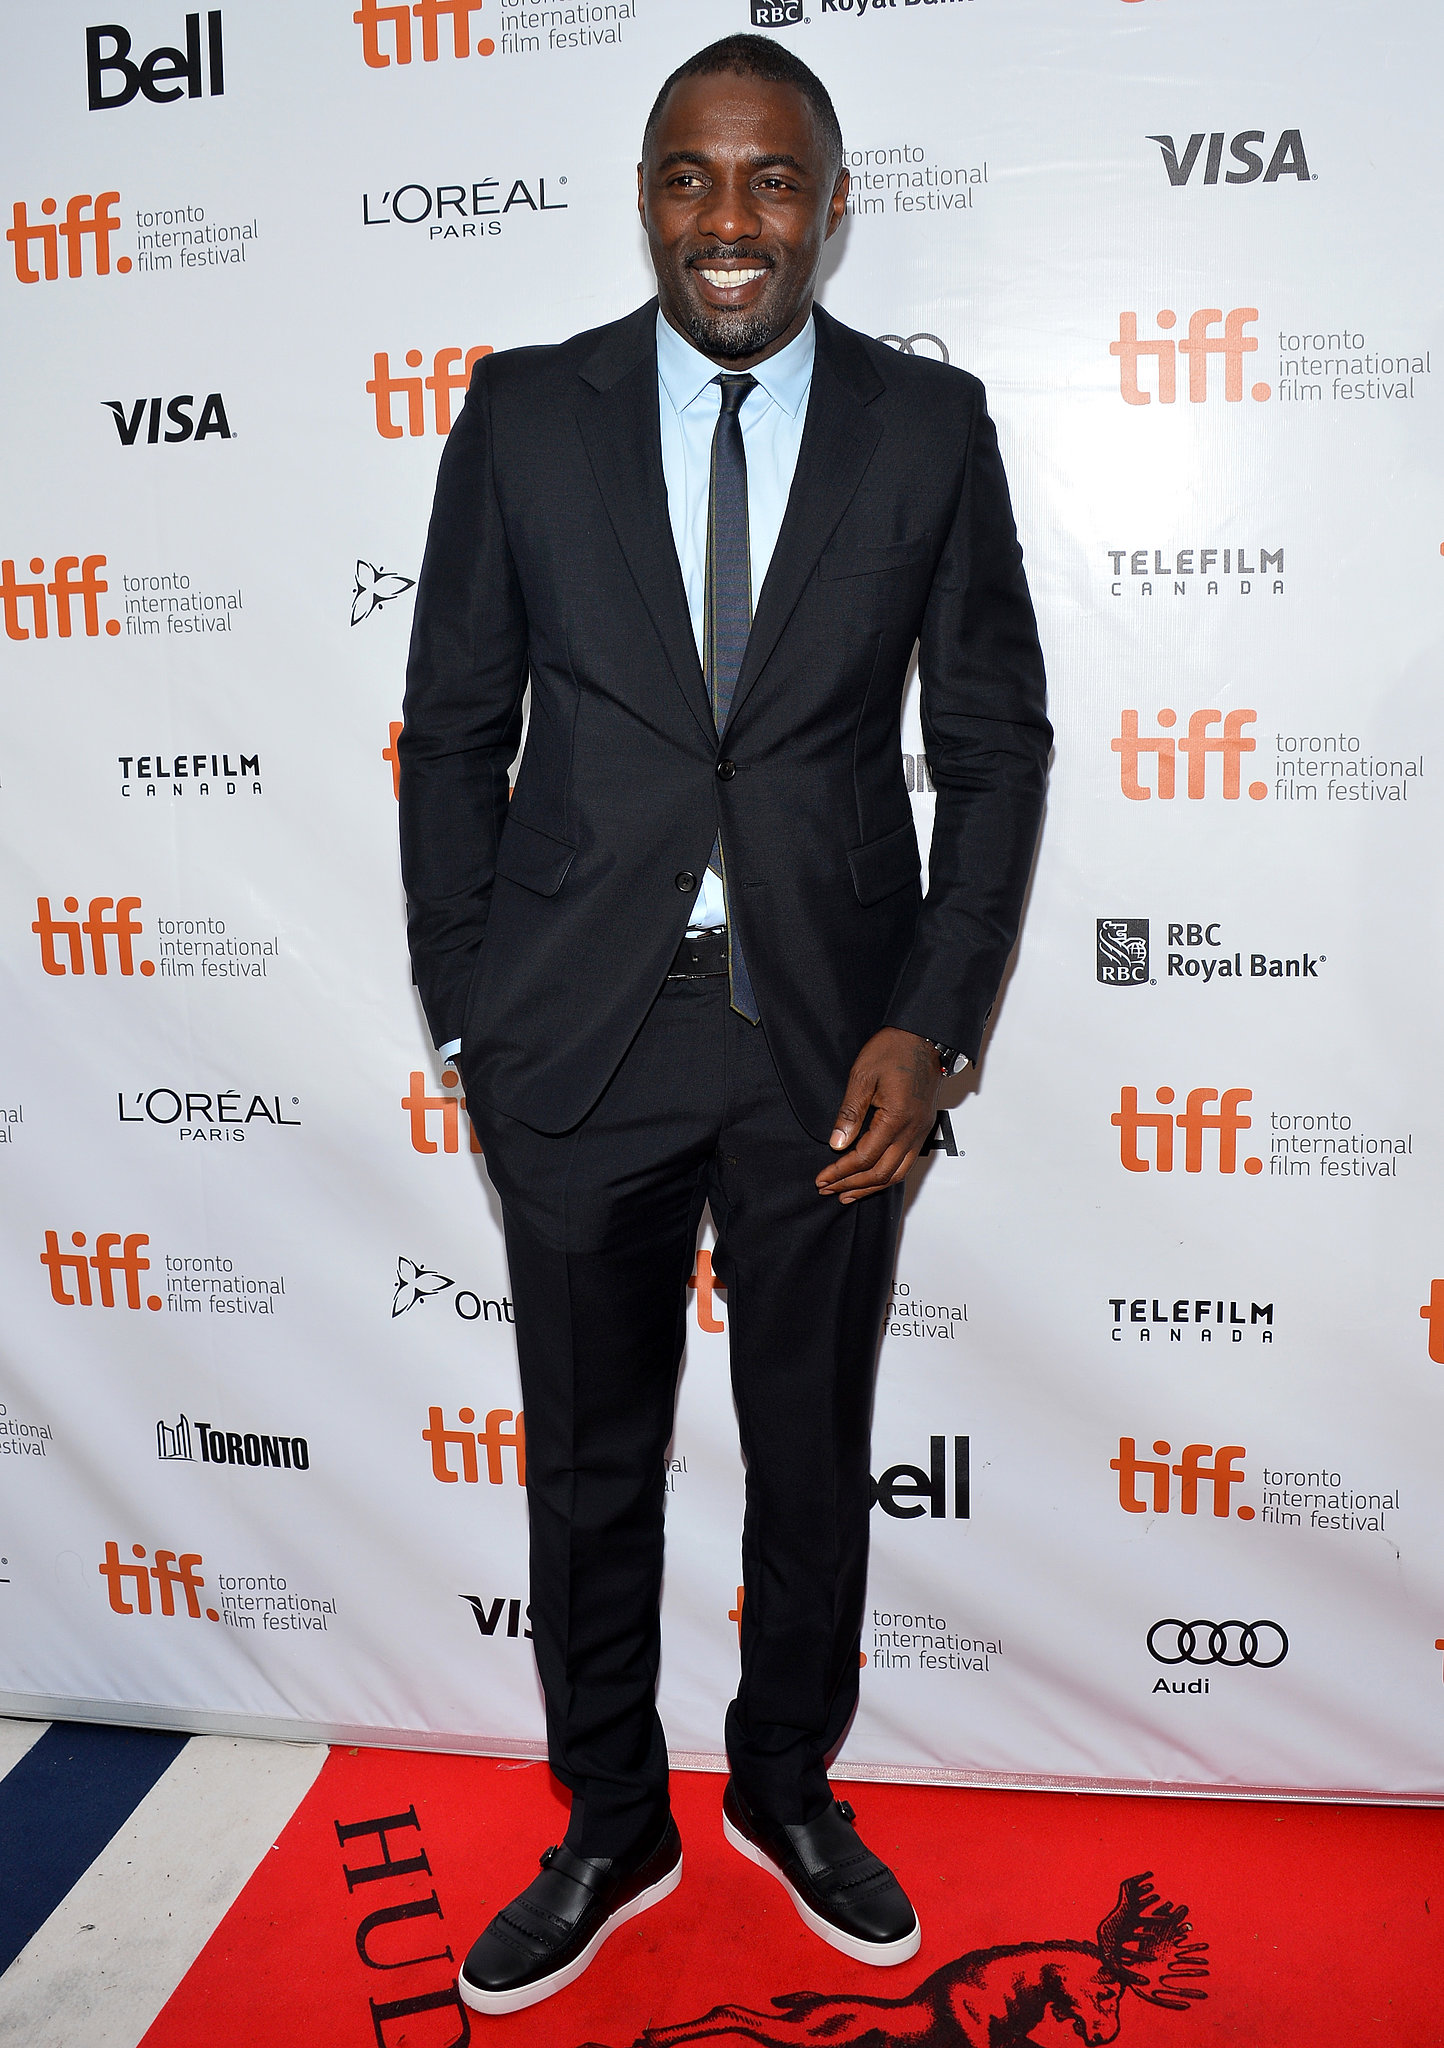 Idris Elba looked mighty dapper at the premiere of Mandela: Long Walk to Freedom.